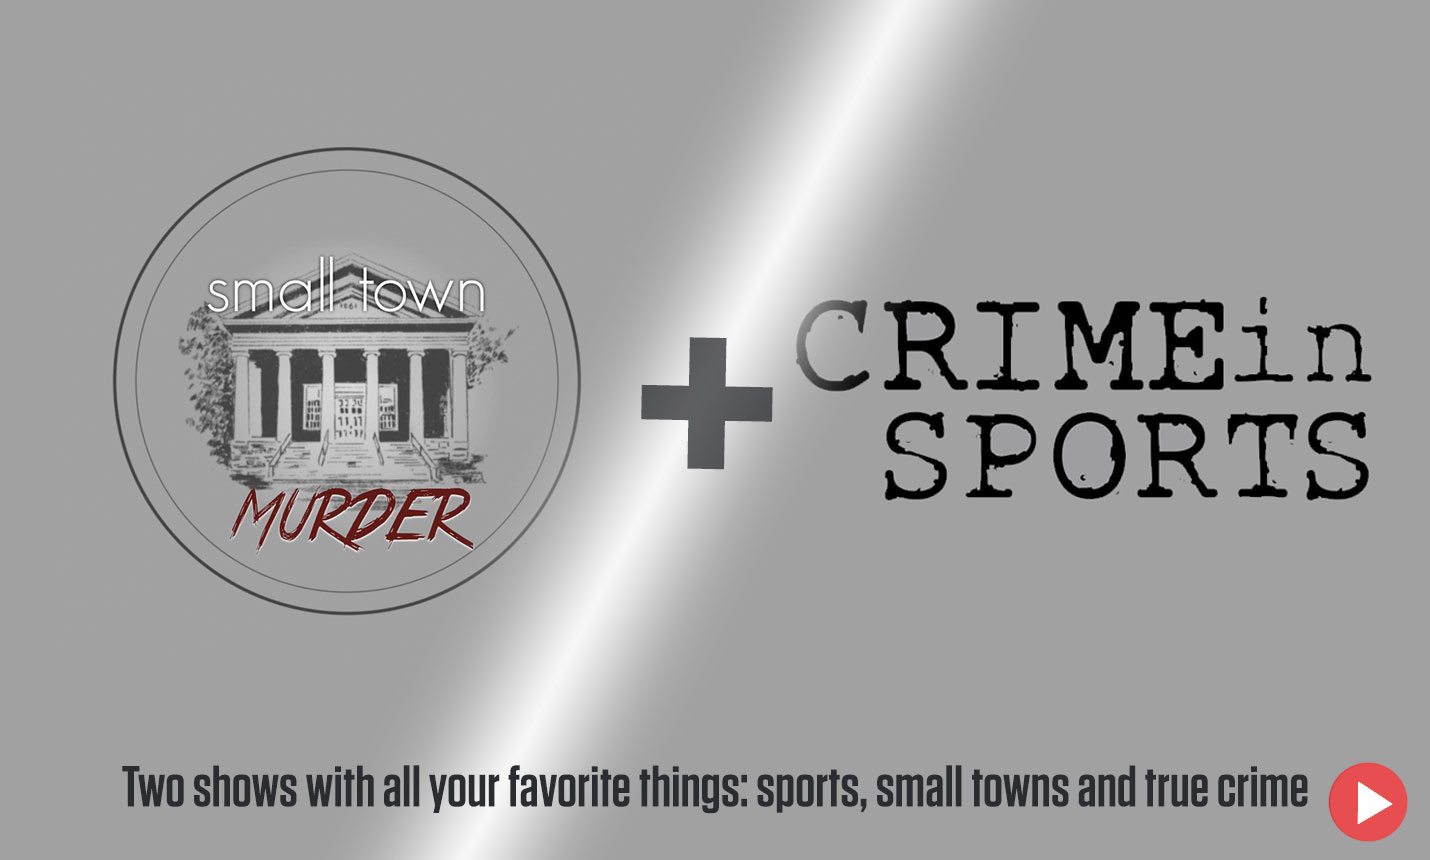 Small Town Murder / Crime in Sports